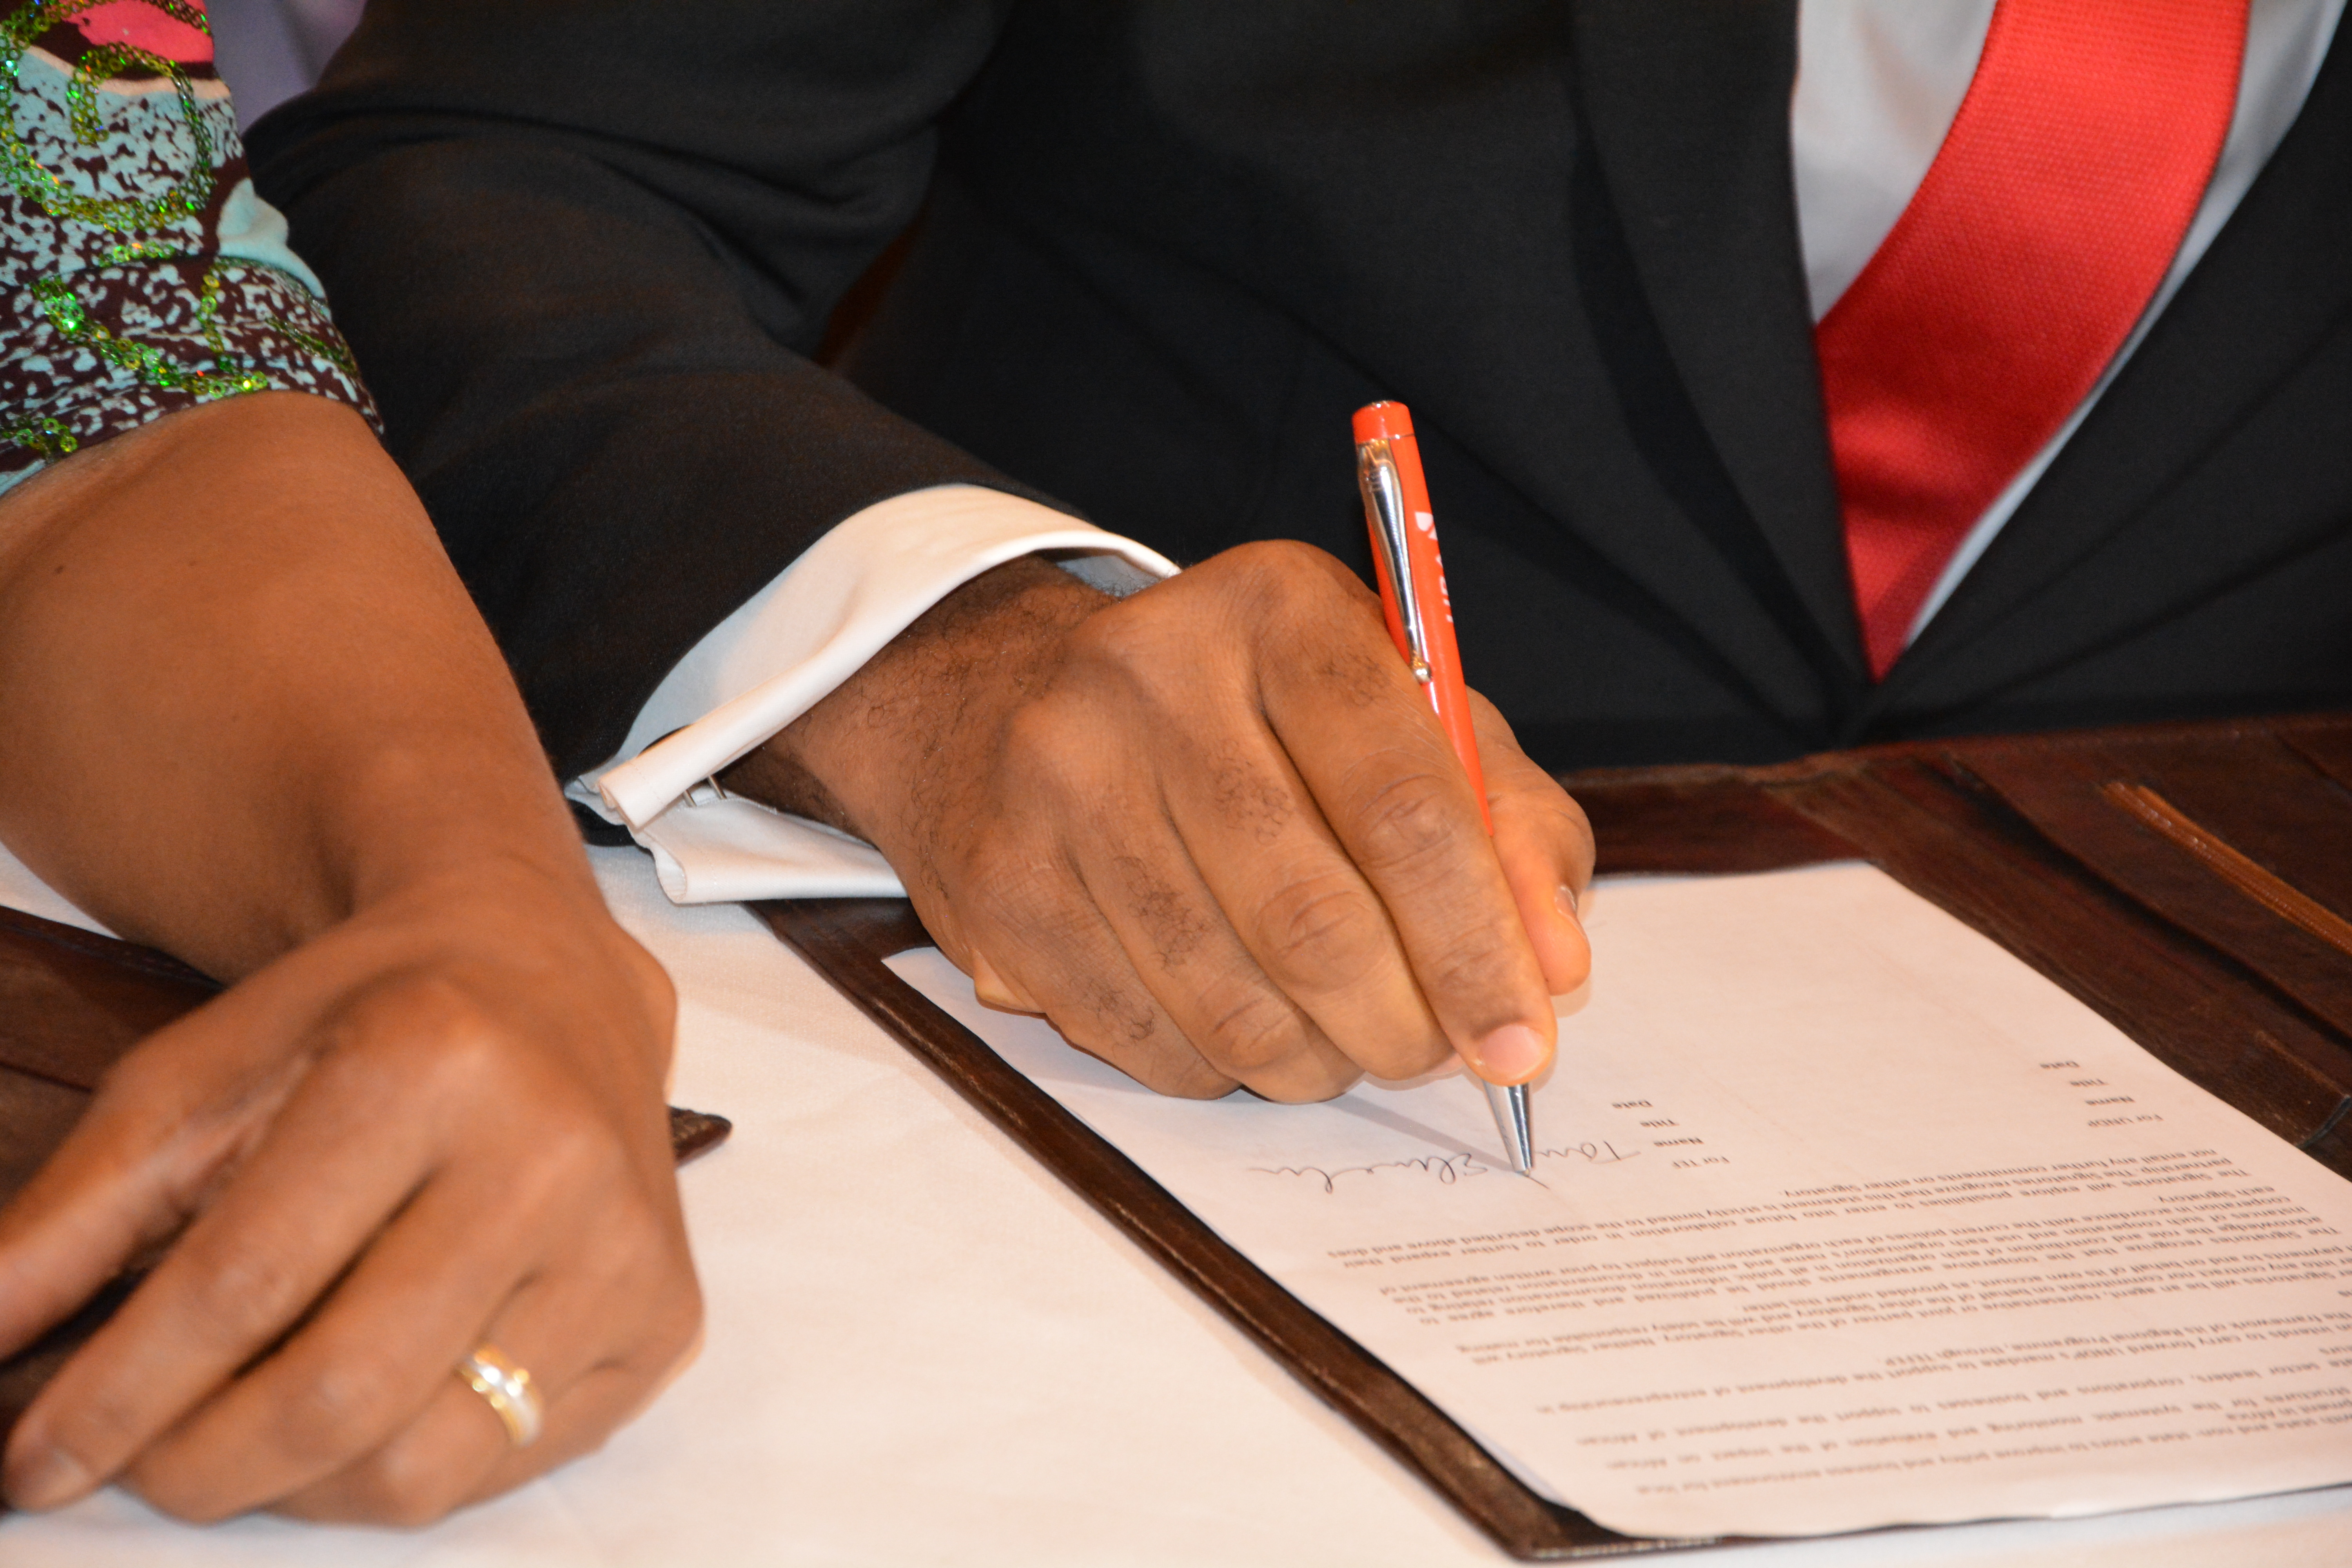 UNDP Partners with the Tony Elumelu Foundation to Empower 100,000 Young Entrepreneurs in Africa